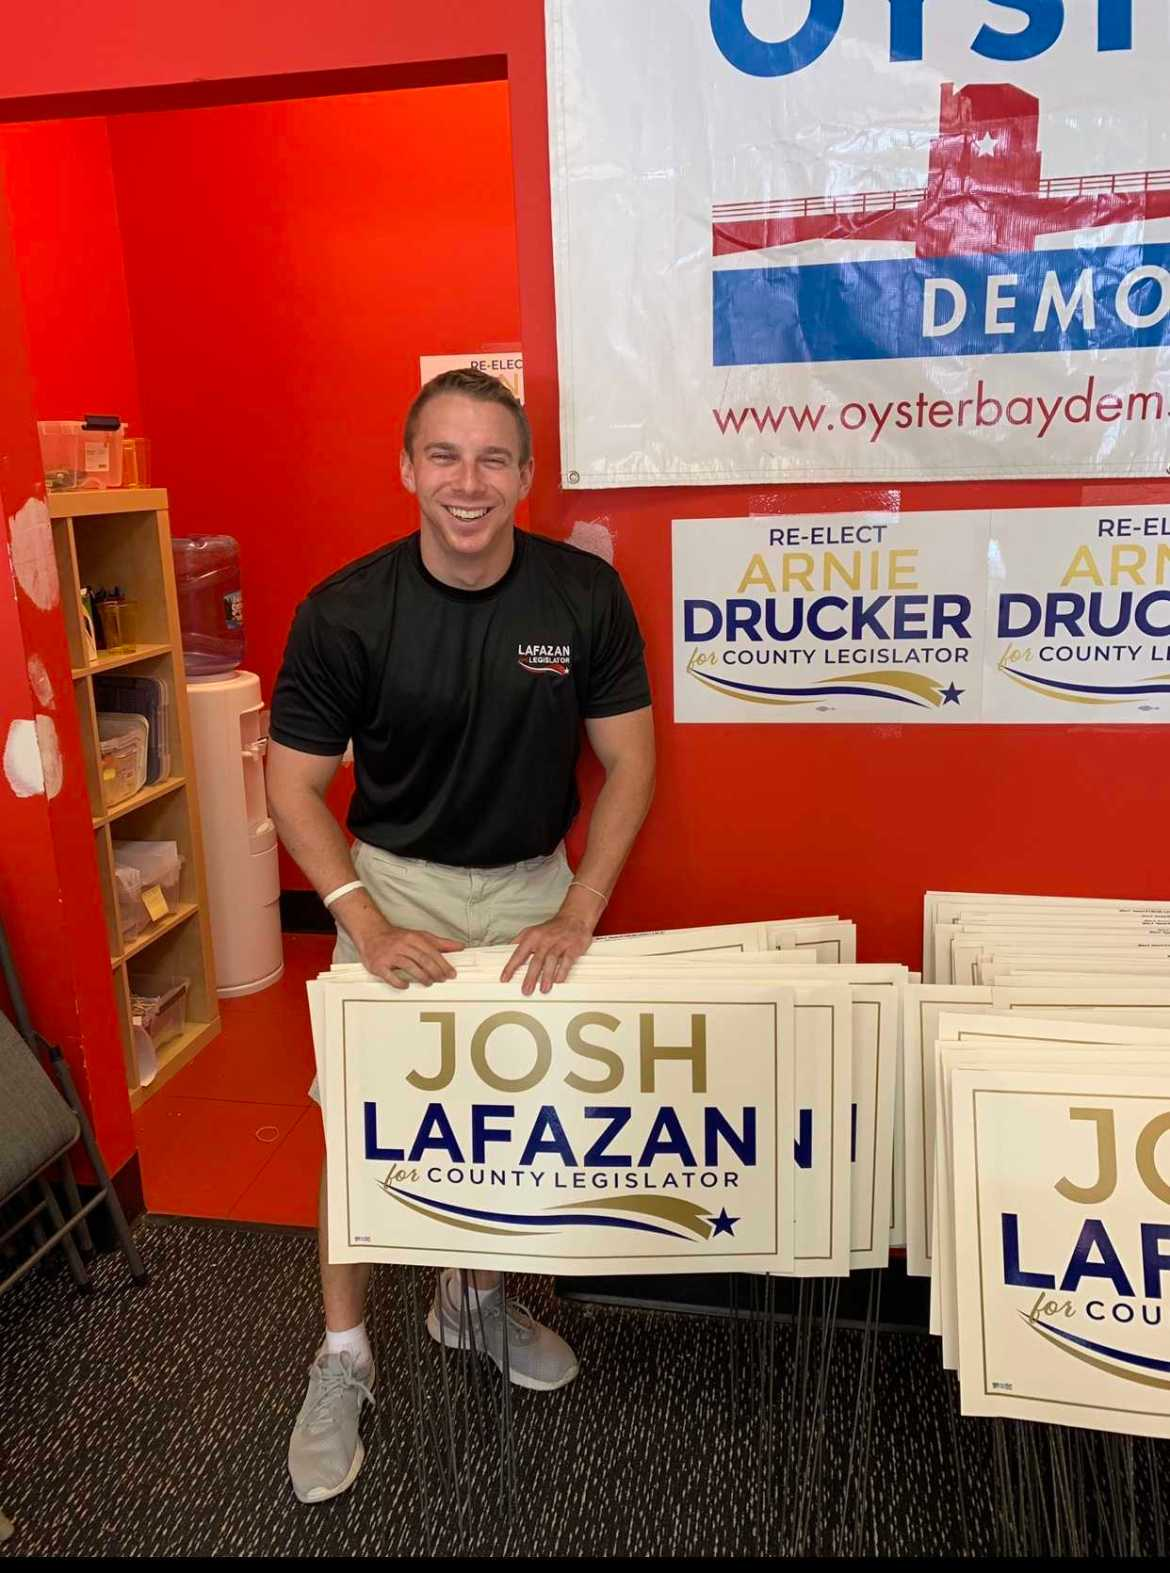 Josh Lafazan '16 poses with campaign posters. Lafazan became one of New York's youngest politicians when he won his race for a seat in the Nassau County Legislature at age 23.